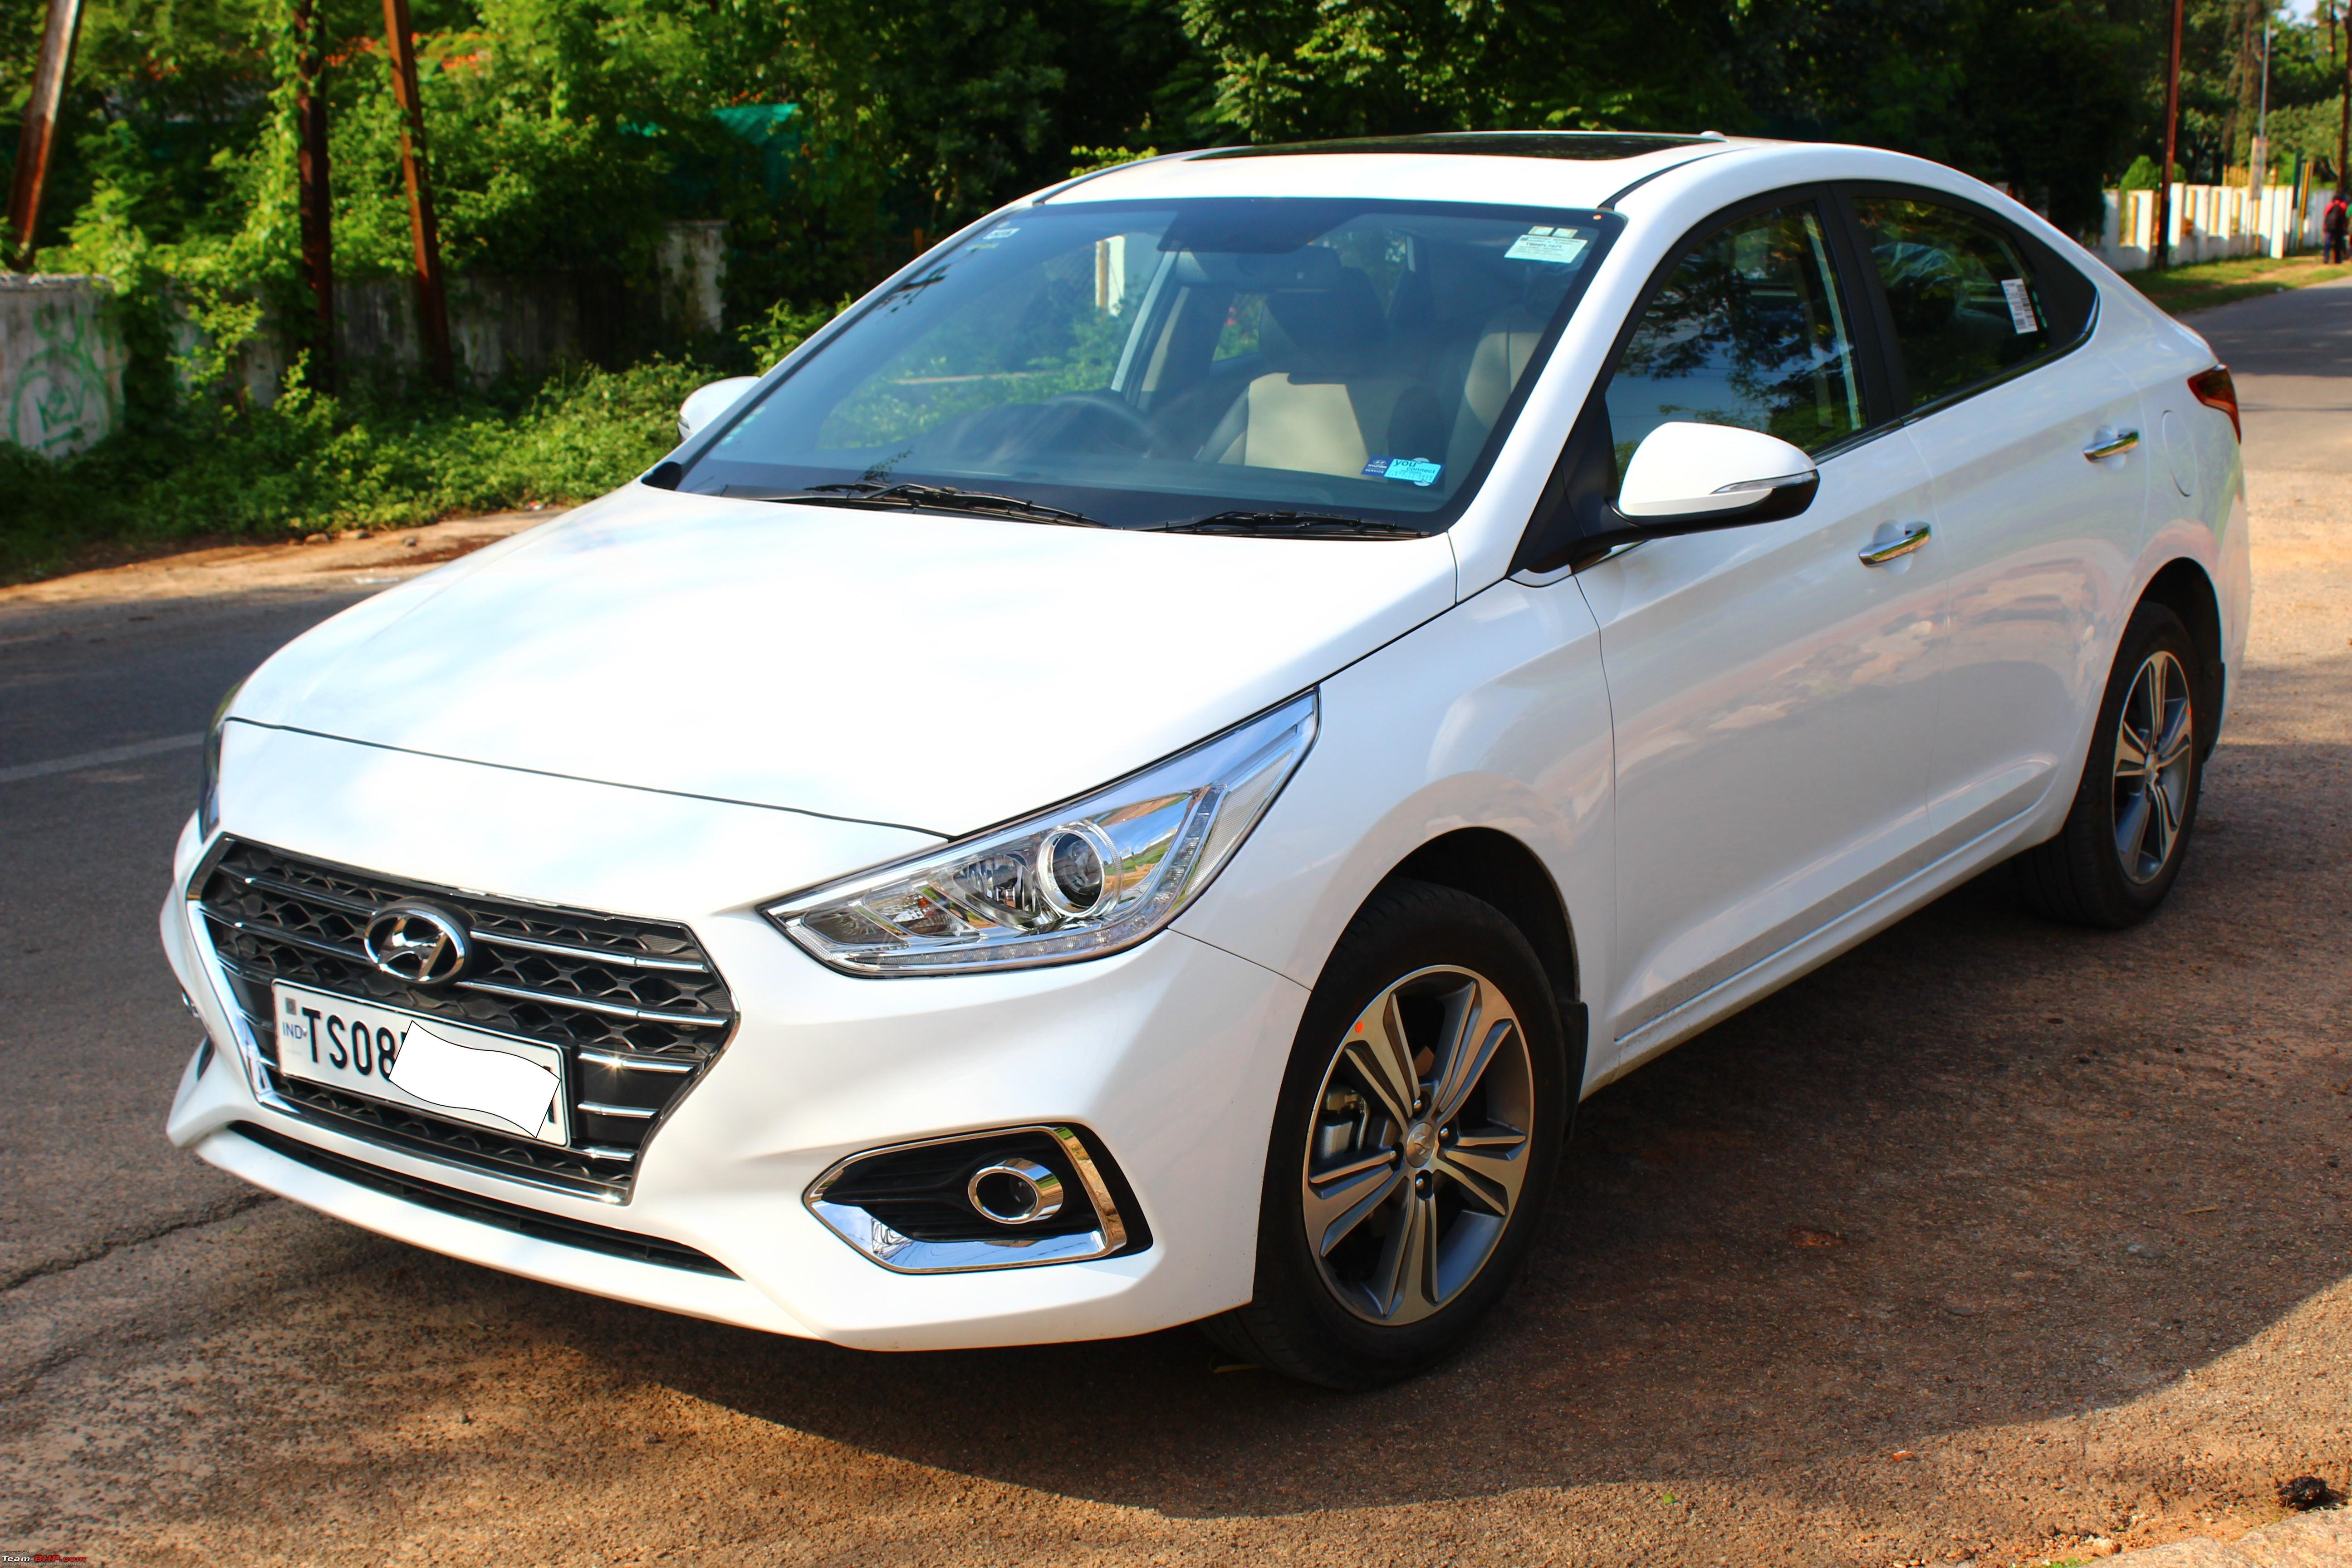 The 5th Gen Hyundai Verna 1st Ownership Review Front 2